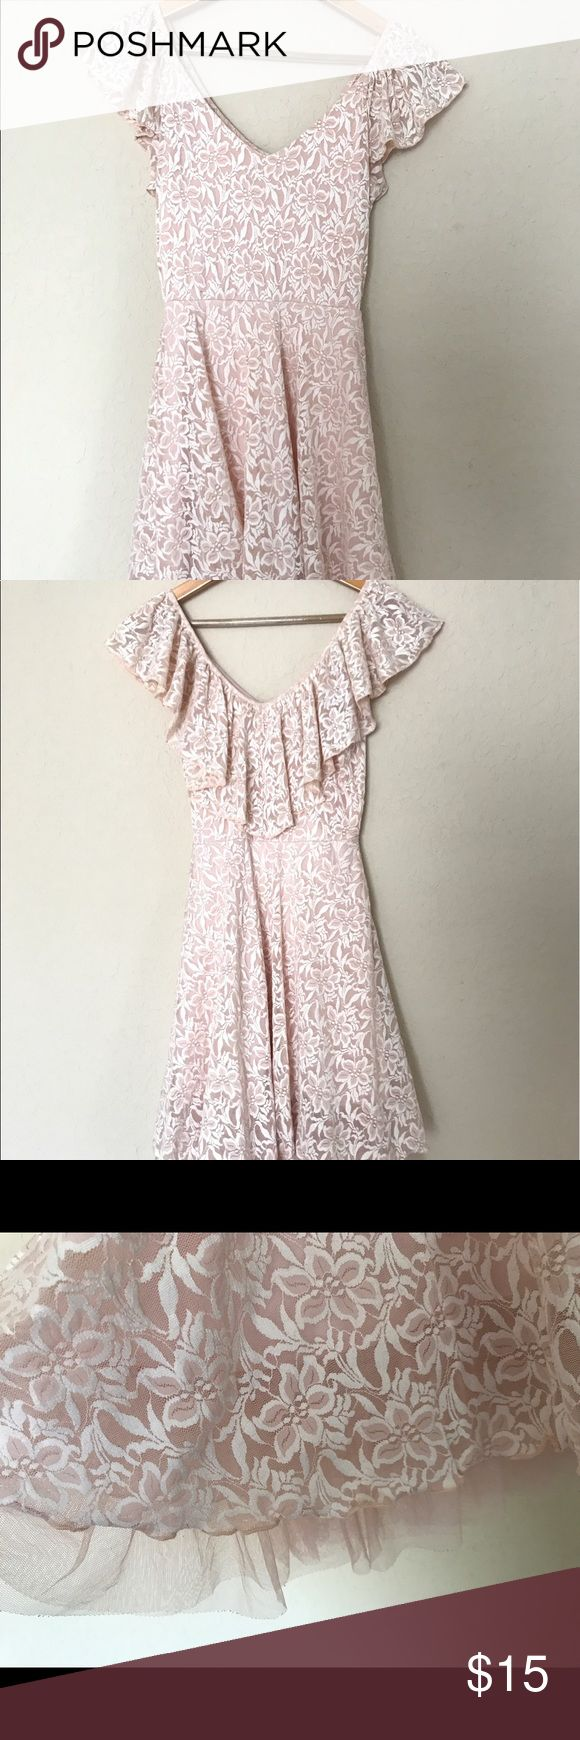 Lauren Conrad Cinderella Collection dress pink This dress is from the Lauren Conrad Disney Cinderella Collection. Can be worn on or off the shoulders. Beautiful pink lace. No tears. No stains. Size small. LC Lauren Conrad Dresses